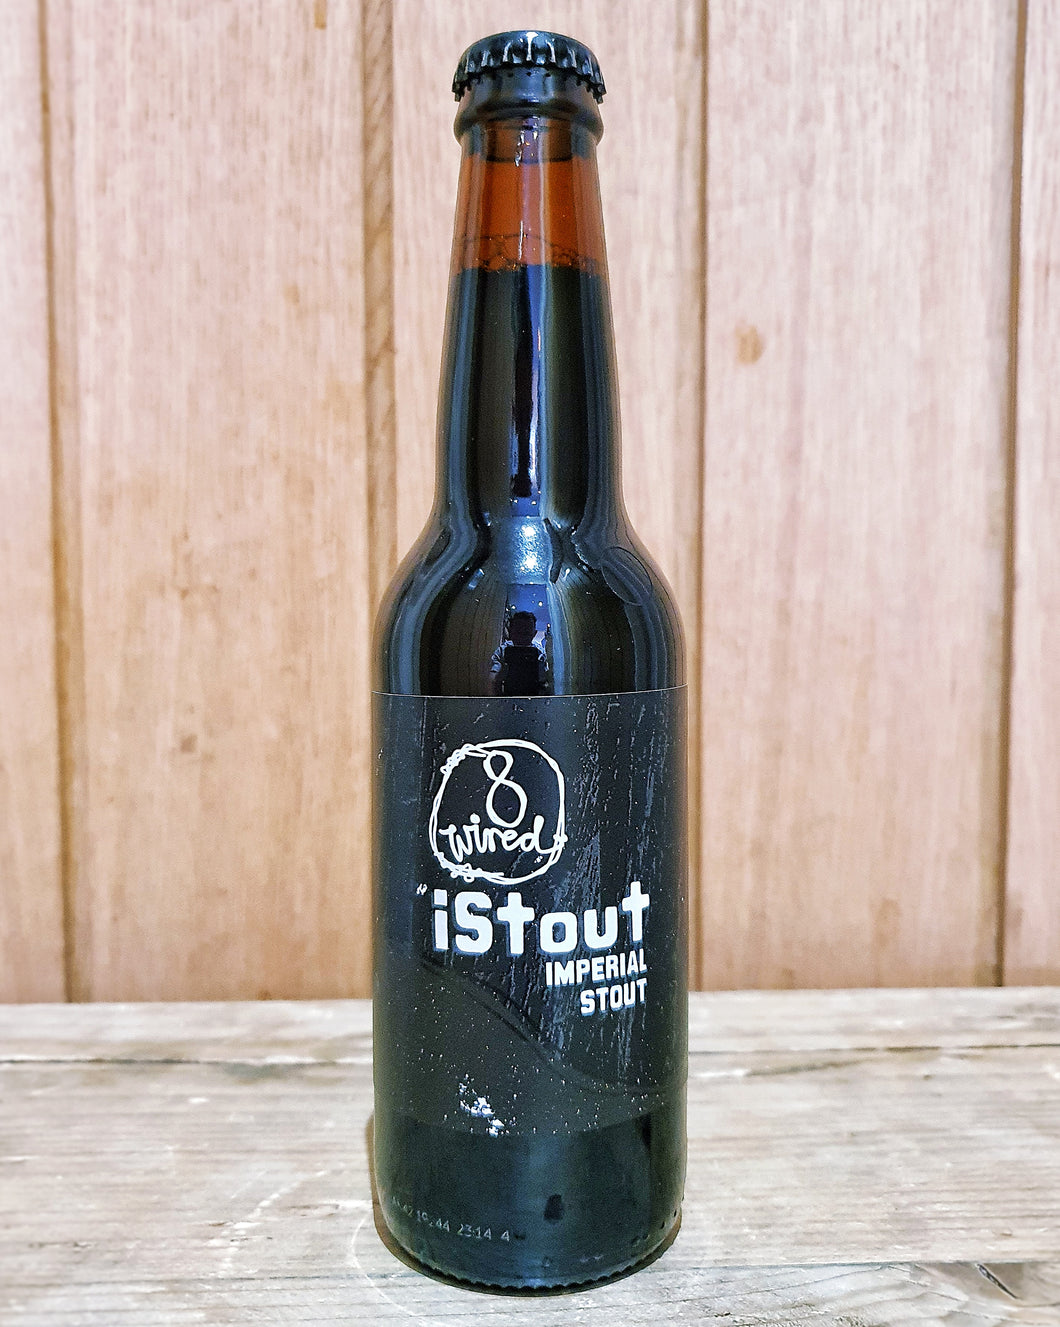 8 Wired Brewing Co - iStout